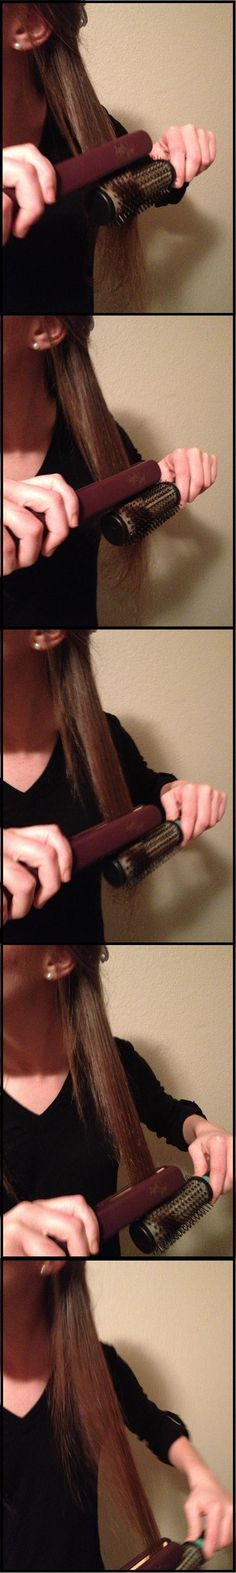 How to guide your hair with a brush while straightening - this helps avoid end damage!